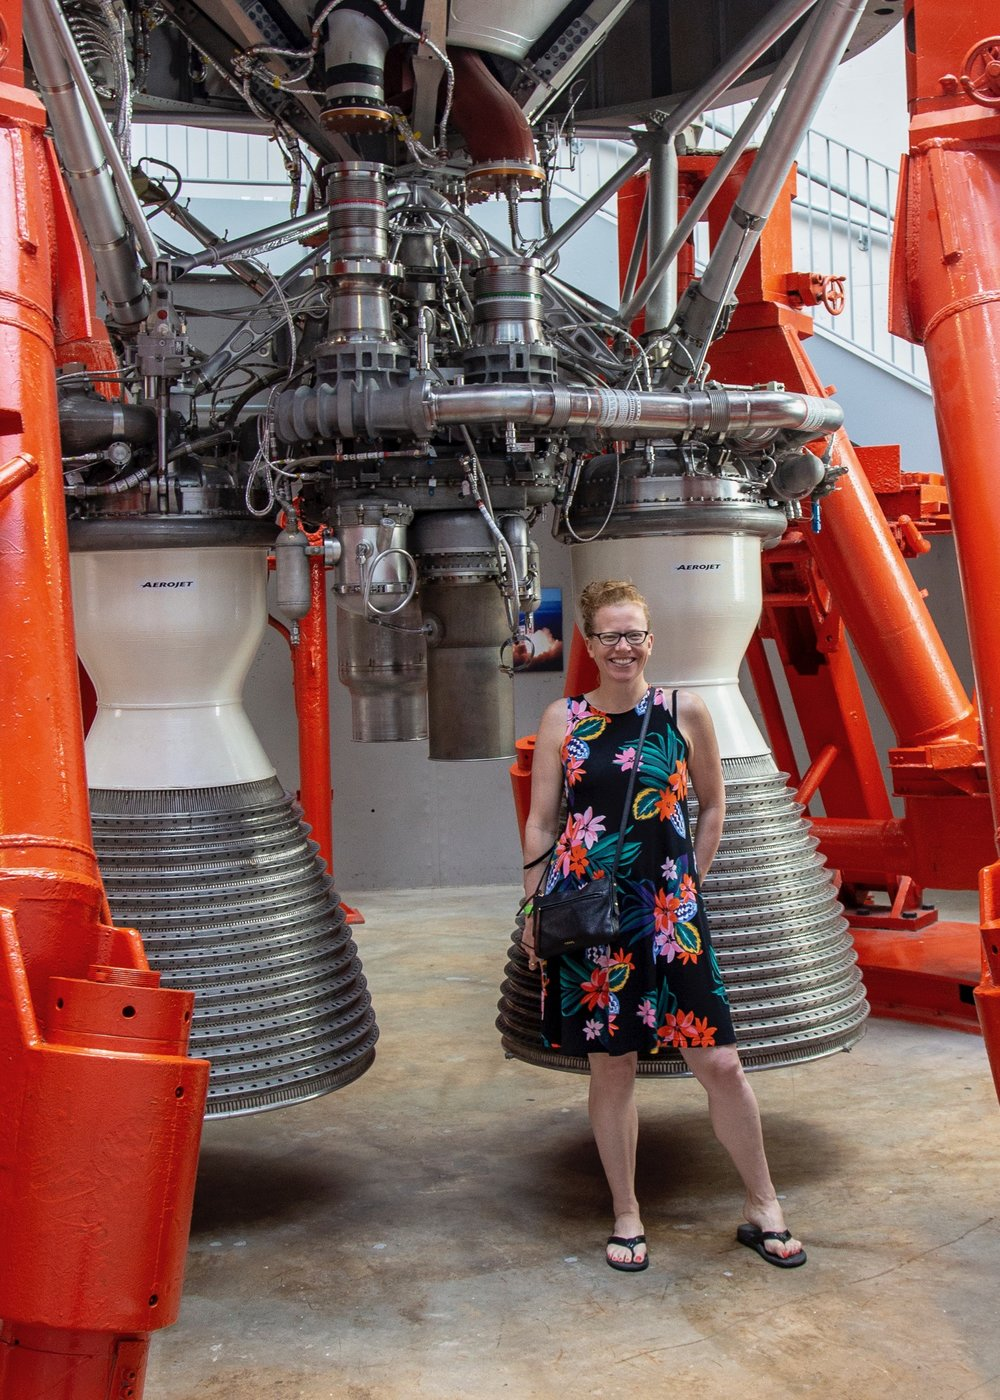 Justine providing some scale for the Titan II engines